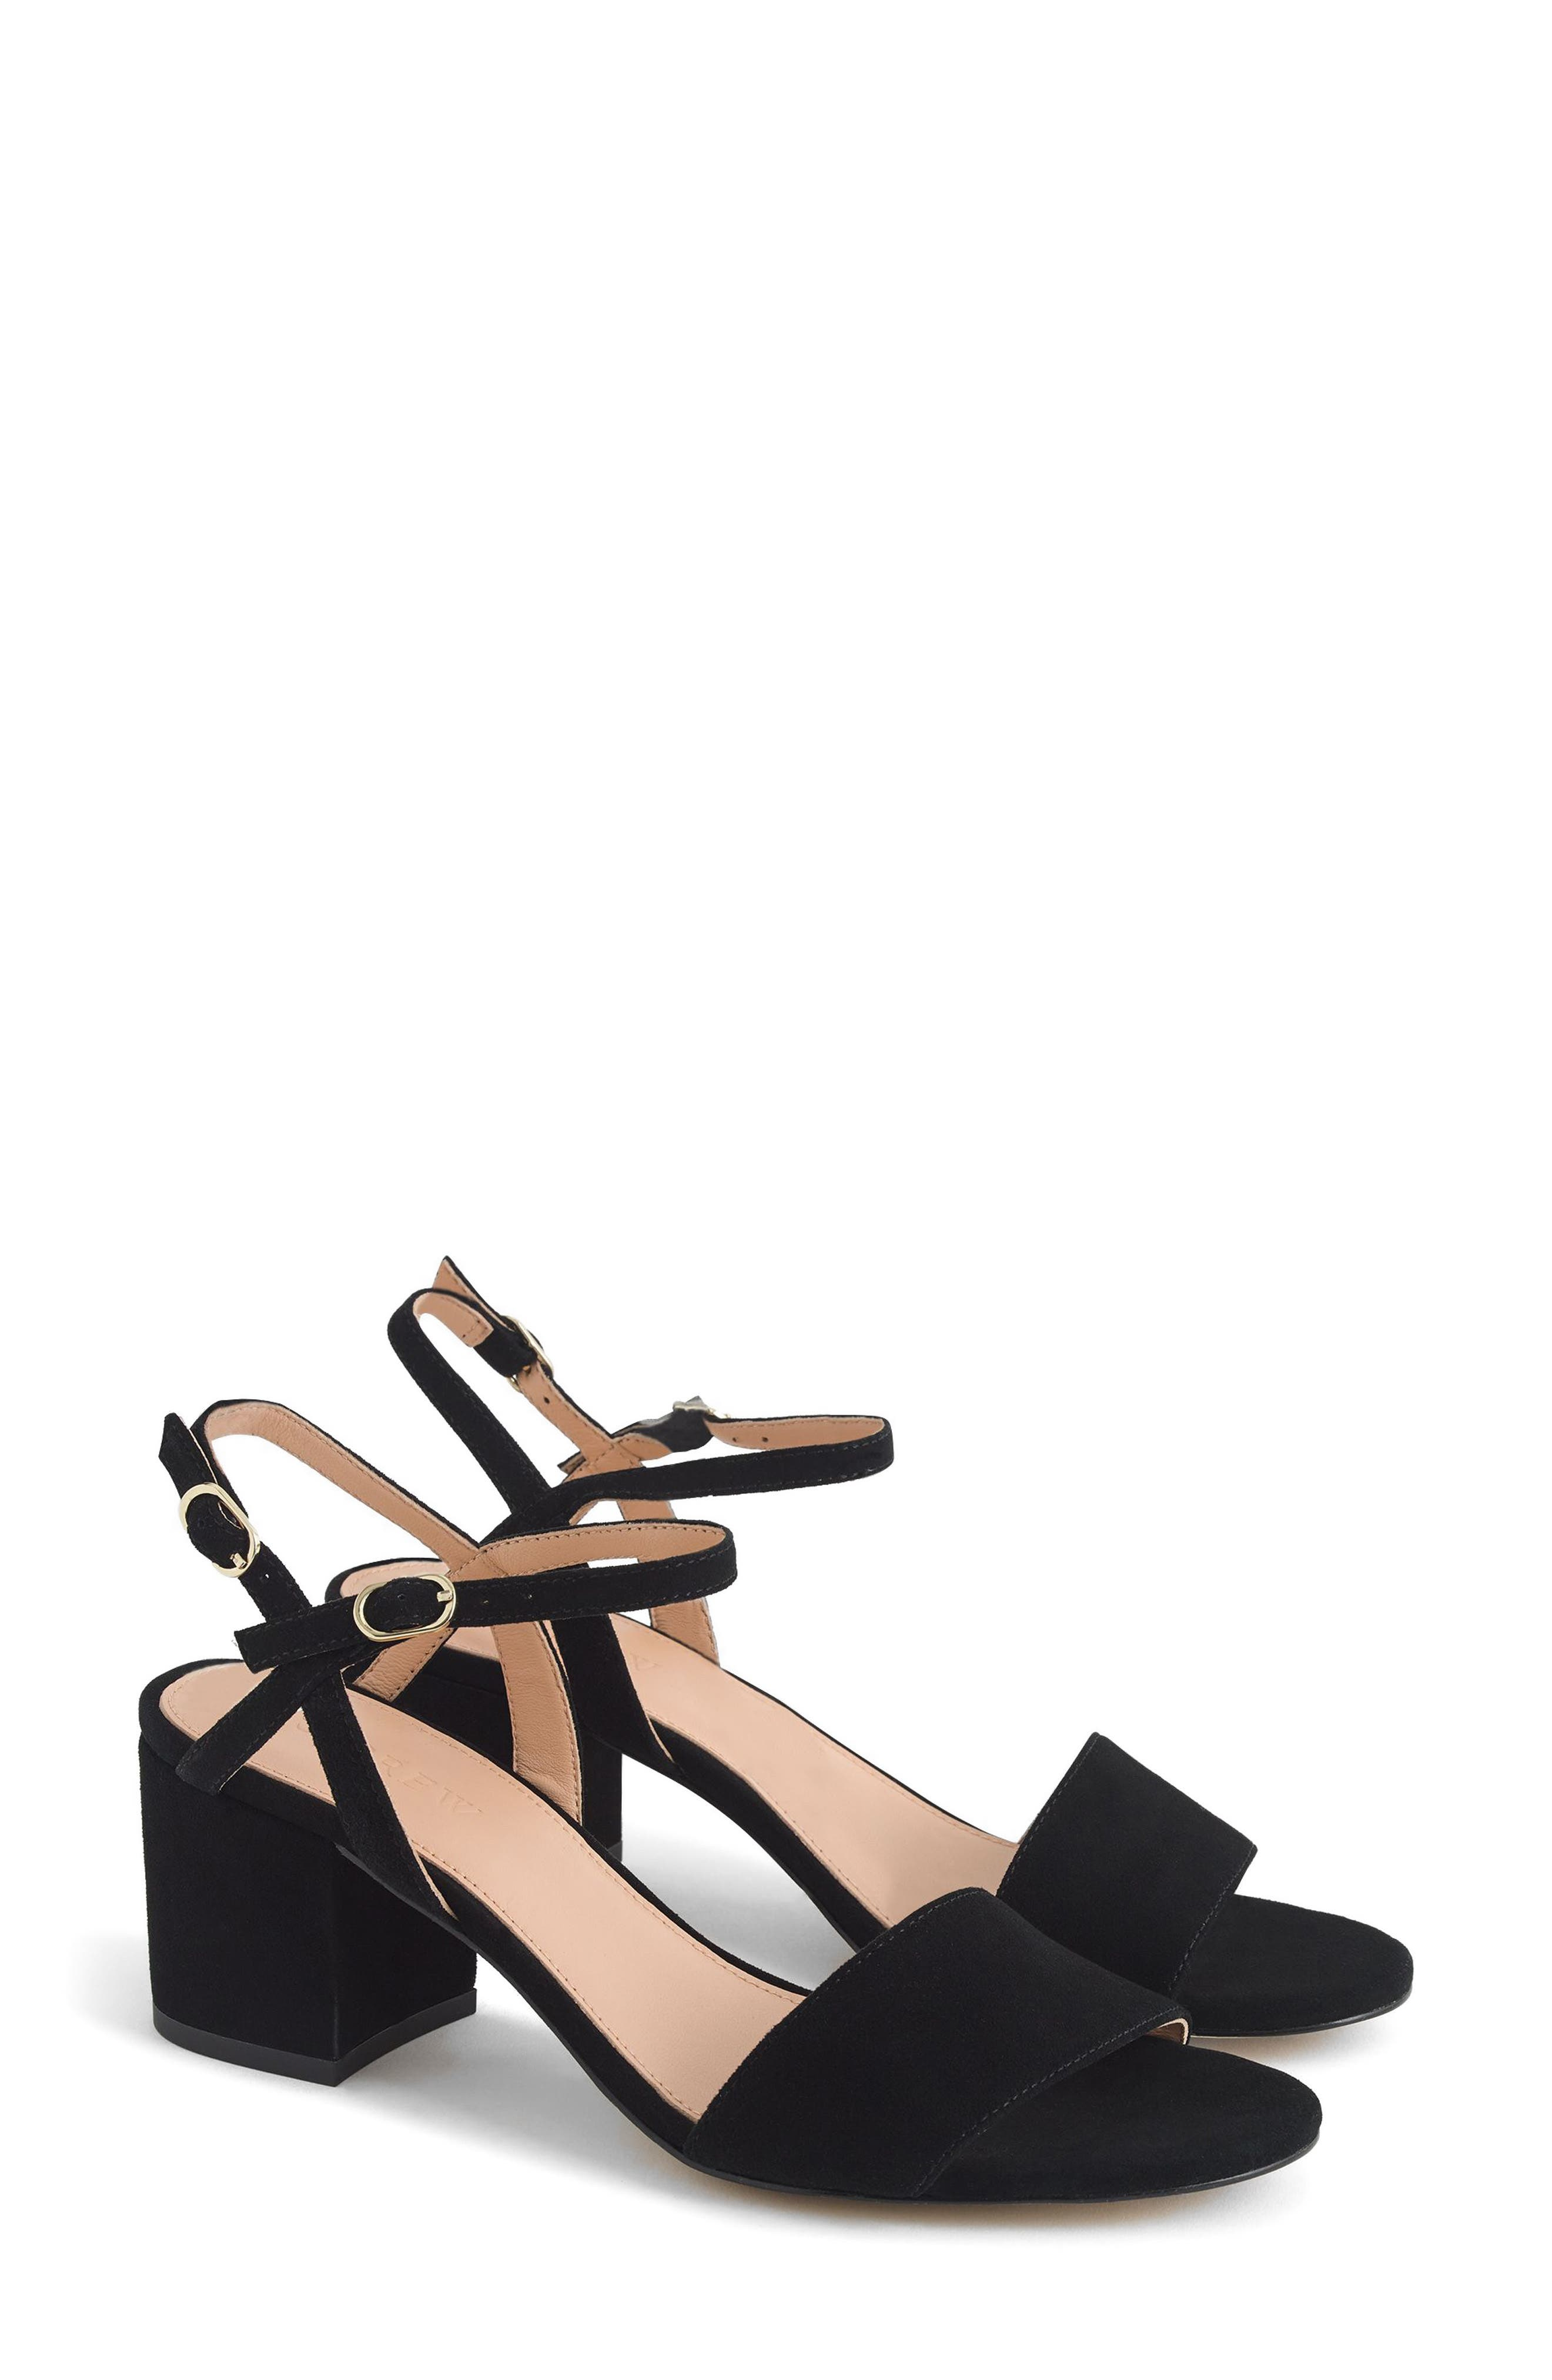 Strappy Block Heel Sandal,                             Main thumbnail 1, color,                             Black Leather